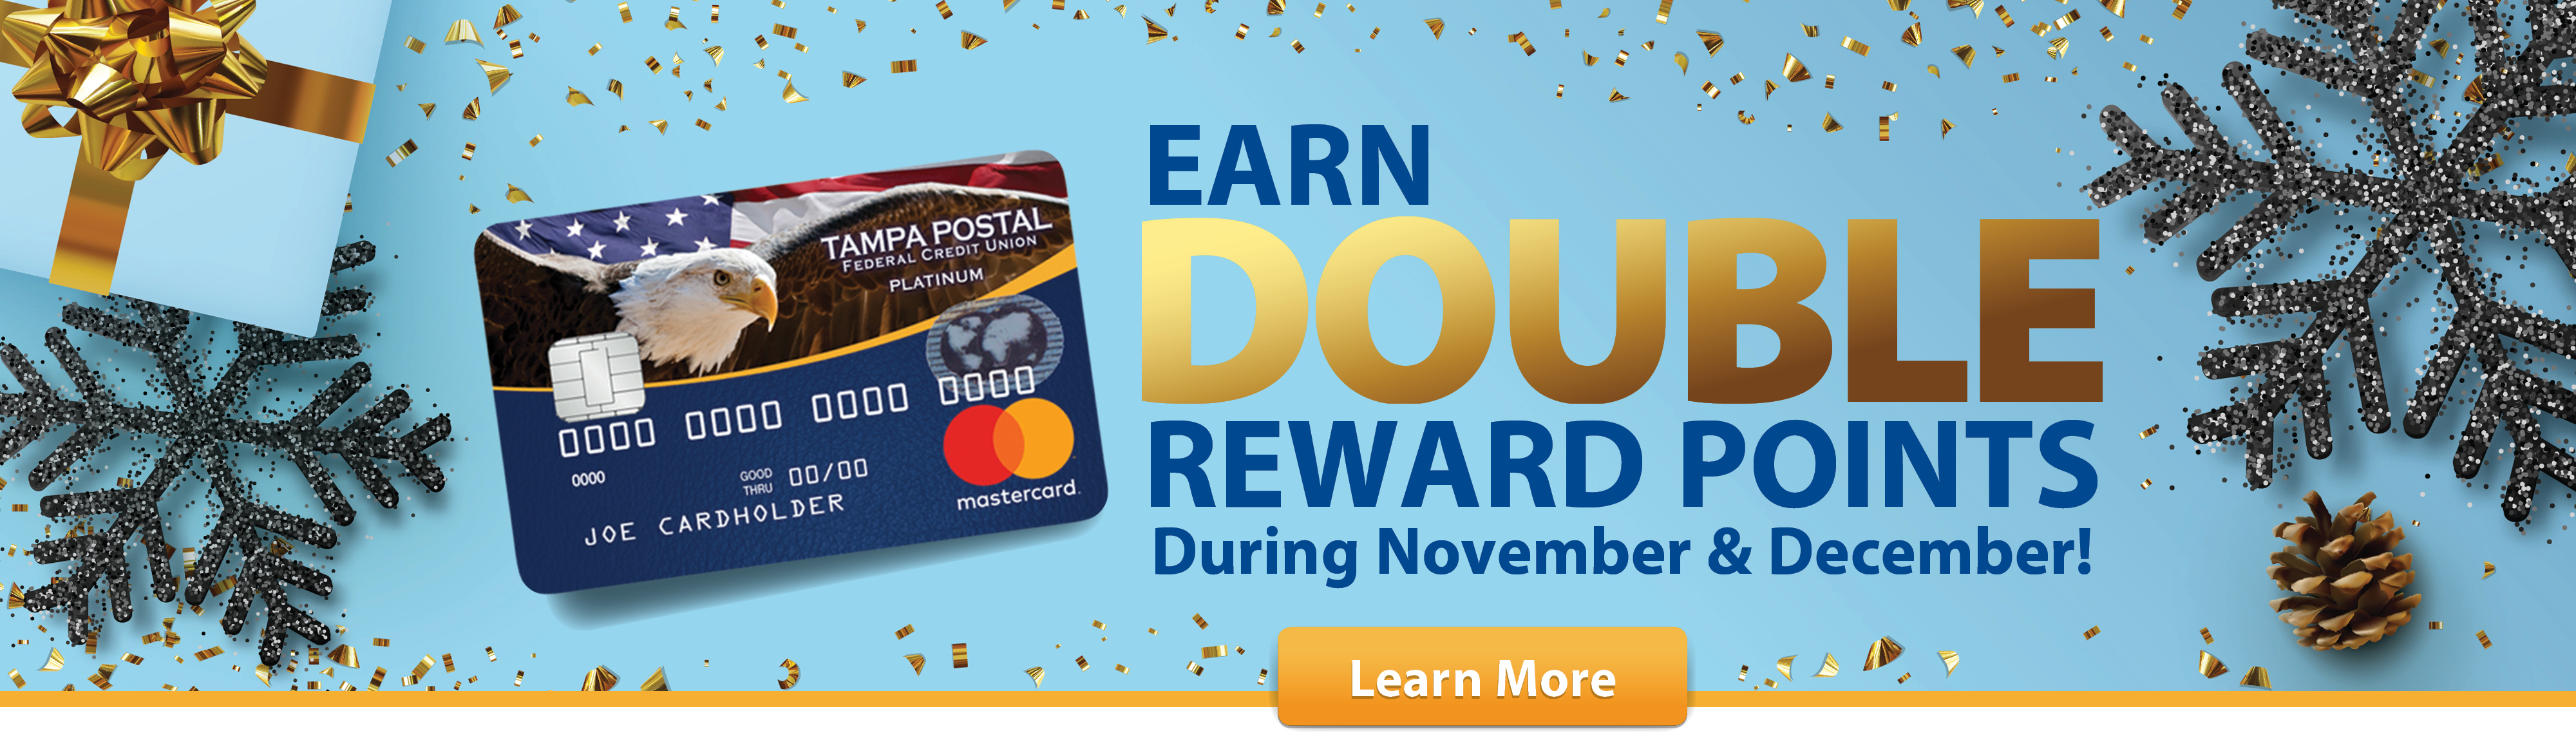 Earn double reward points during November and December